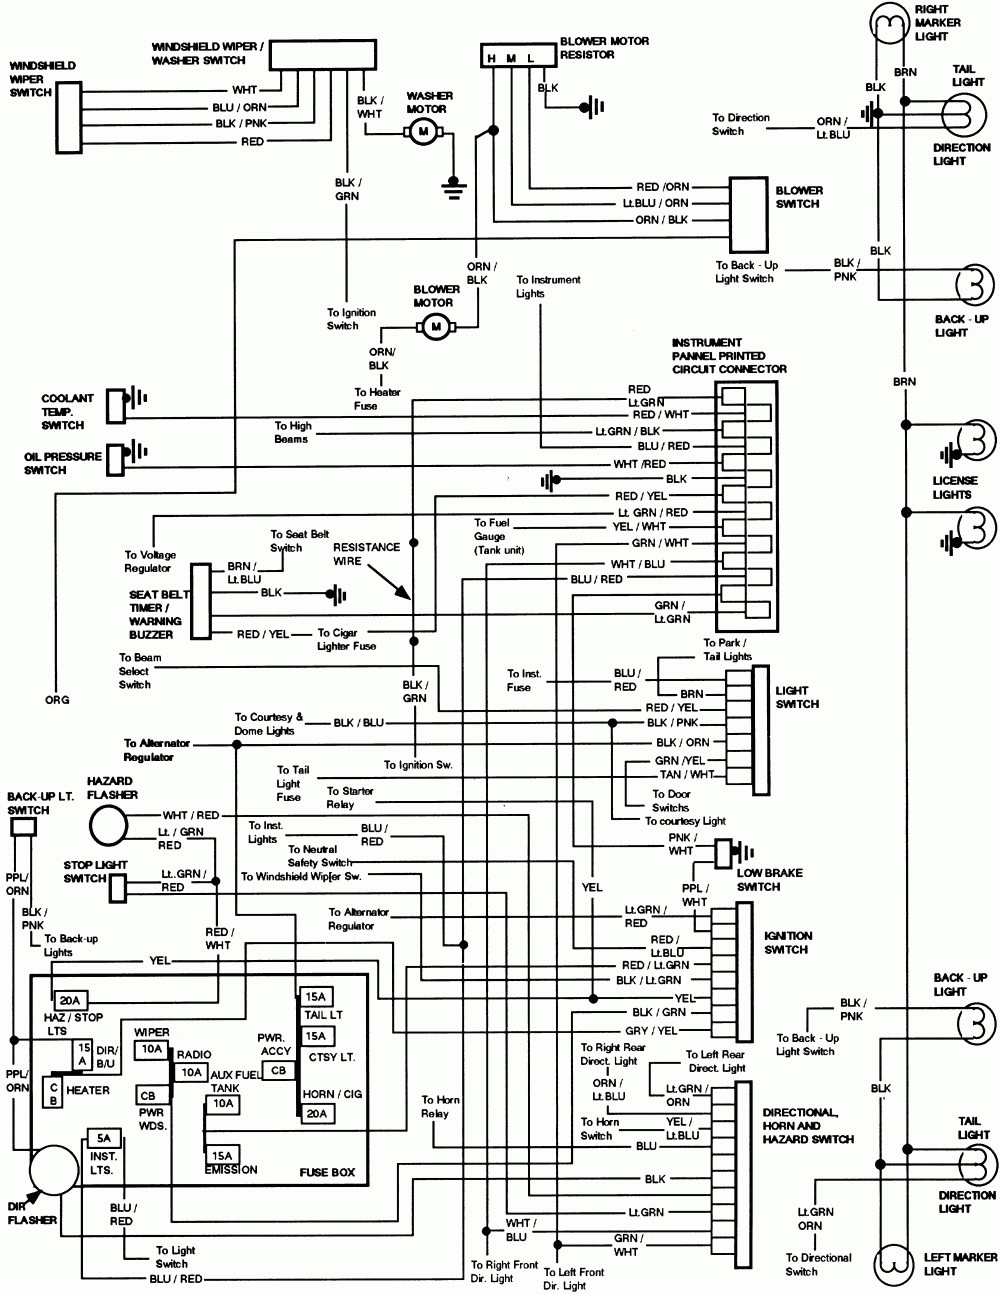 1953 ford f100 wiring diagram 1b62c ford fusion wiring diagram starter digital resources  ford fusion wiring diagram starter